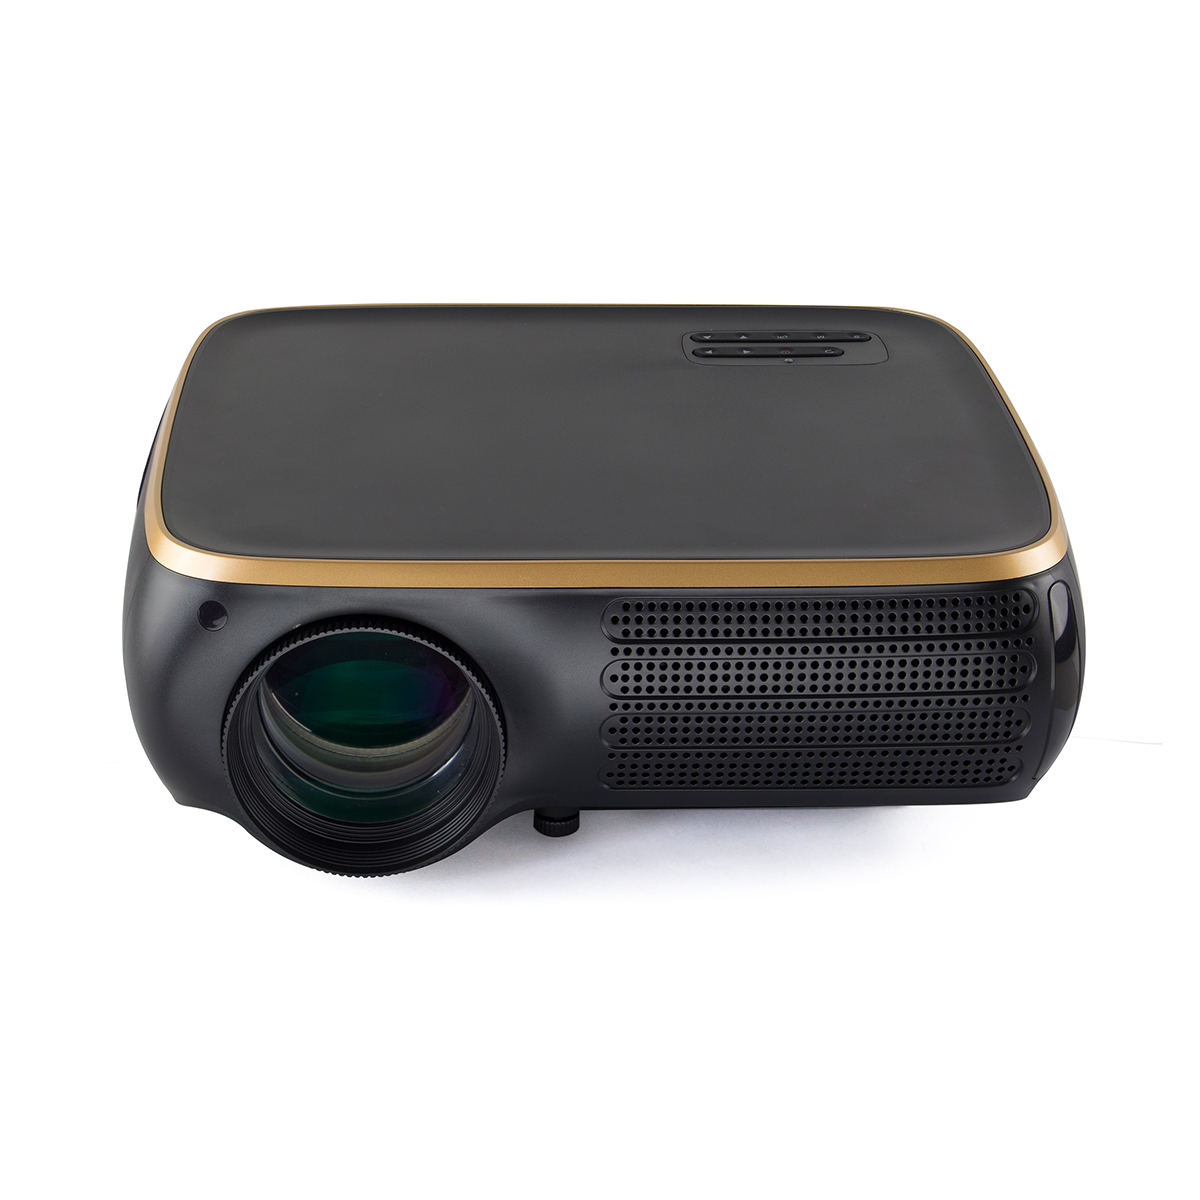 Poner Saund HTP M8 LCD Projector 950 Lumens 1920X1080dpi 1080P 4K HD 3D LED Projector 8G Support for Linux System Standa